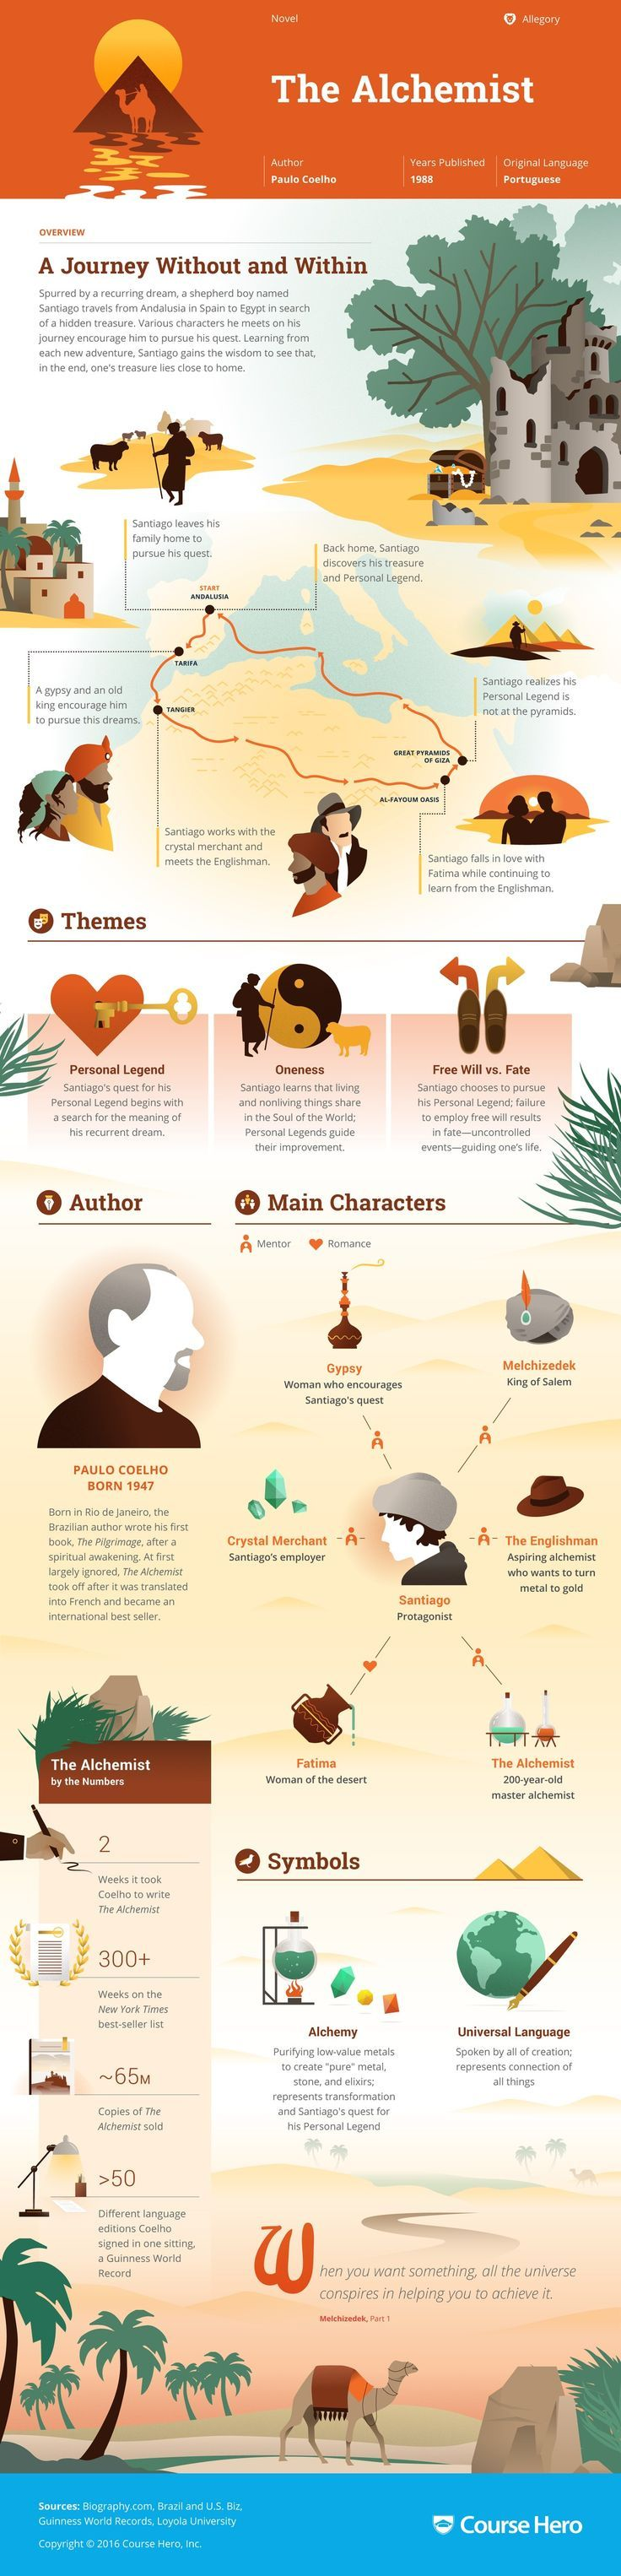 best images about course hero trivia the study guide for paulo coelho s the alchemist including part summary character analysis and more learn all about the alchemist ask questions